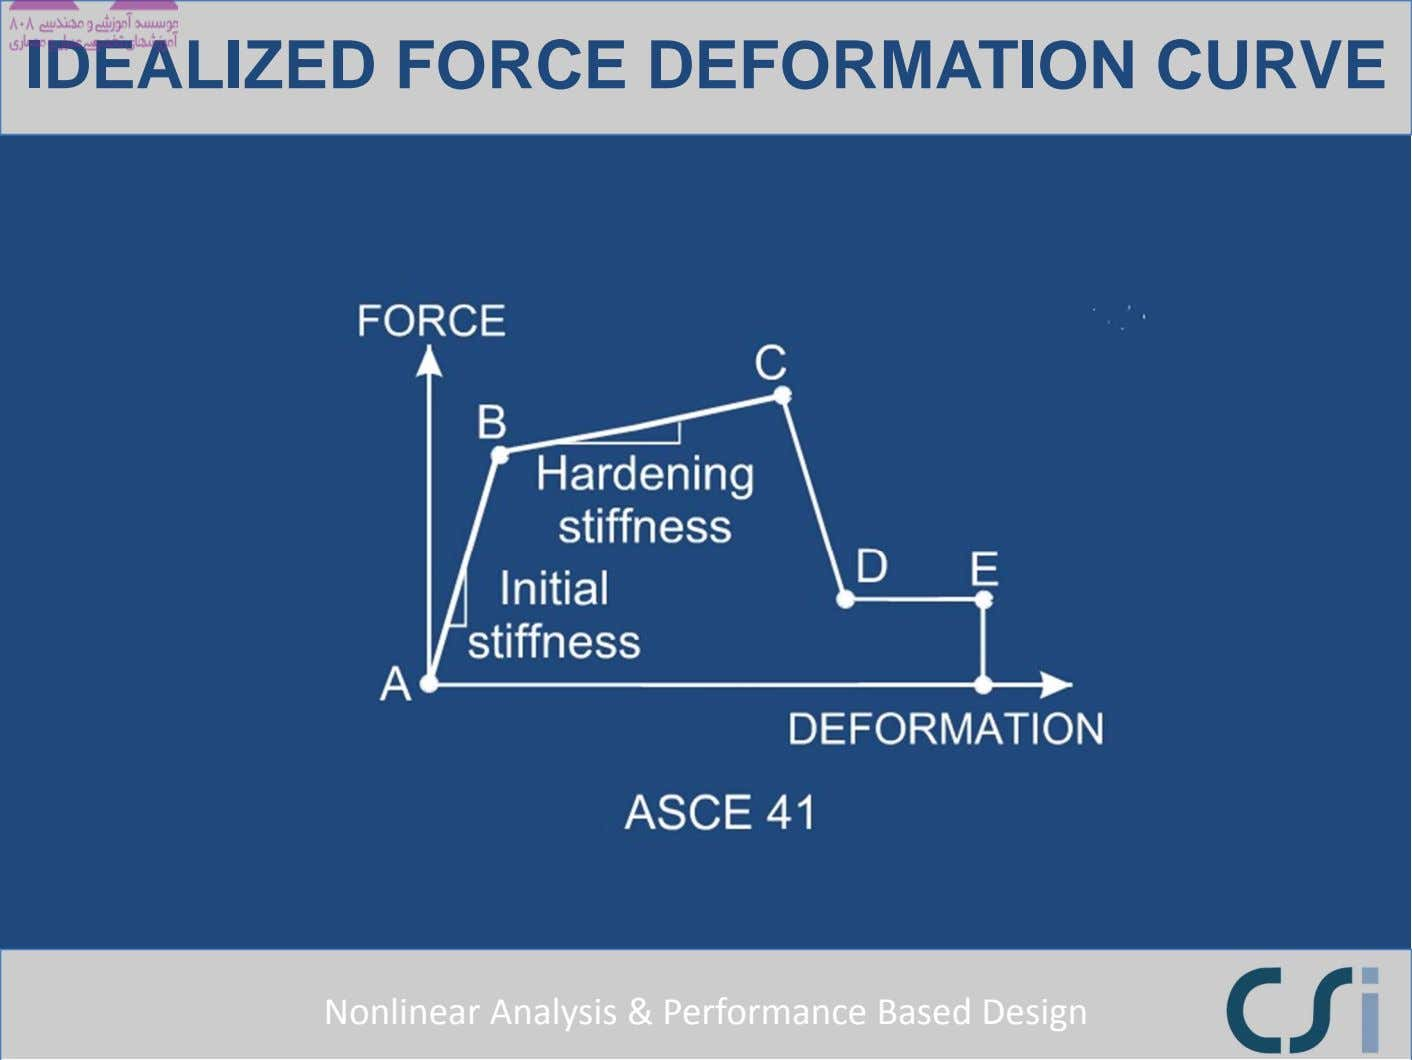 IDEALIZED FORCE DEFORMATION CURVE Nonlinear Analysis & Performance Based Design